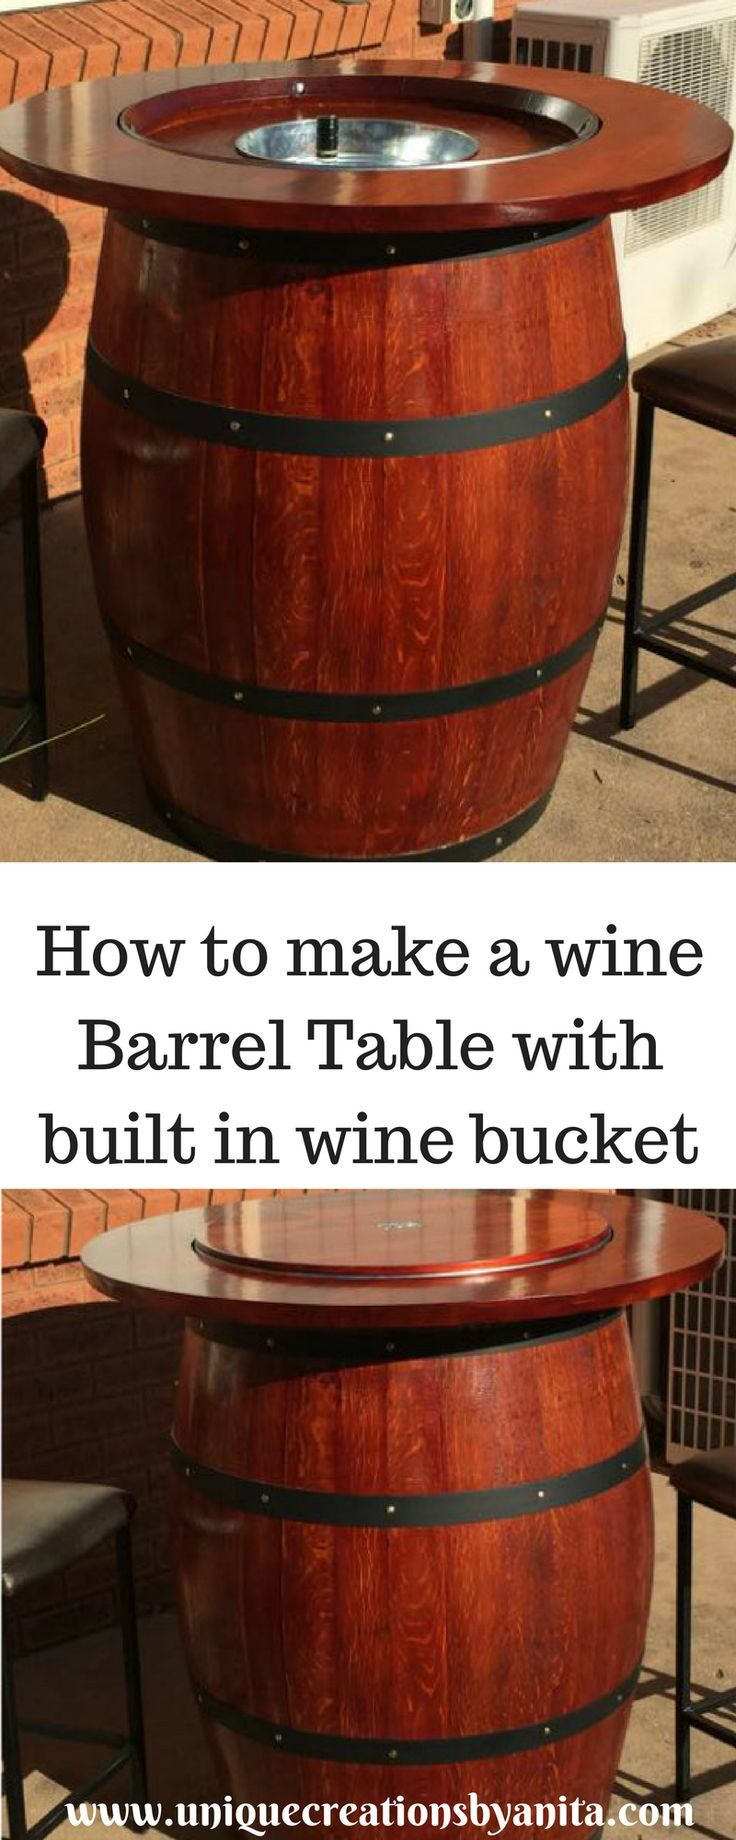 How to make a wine barrel table with a built in wine bucket.